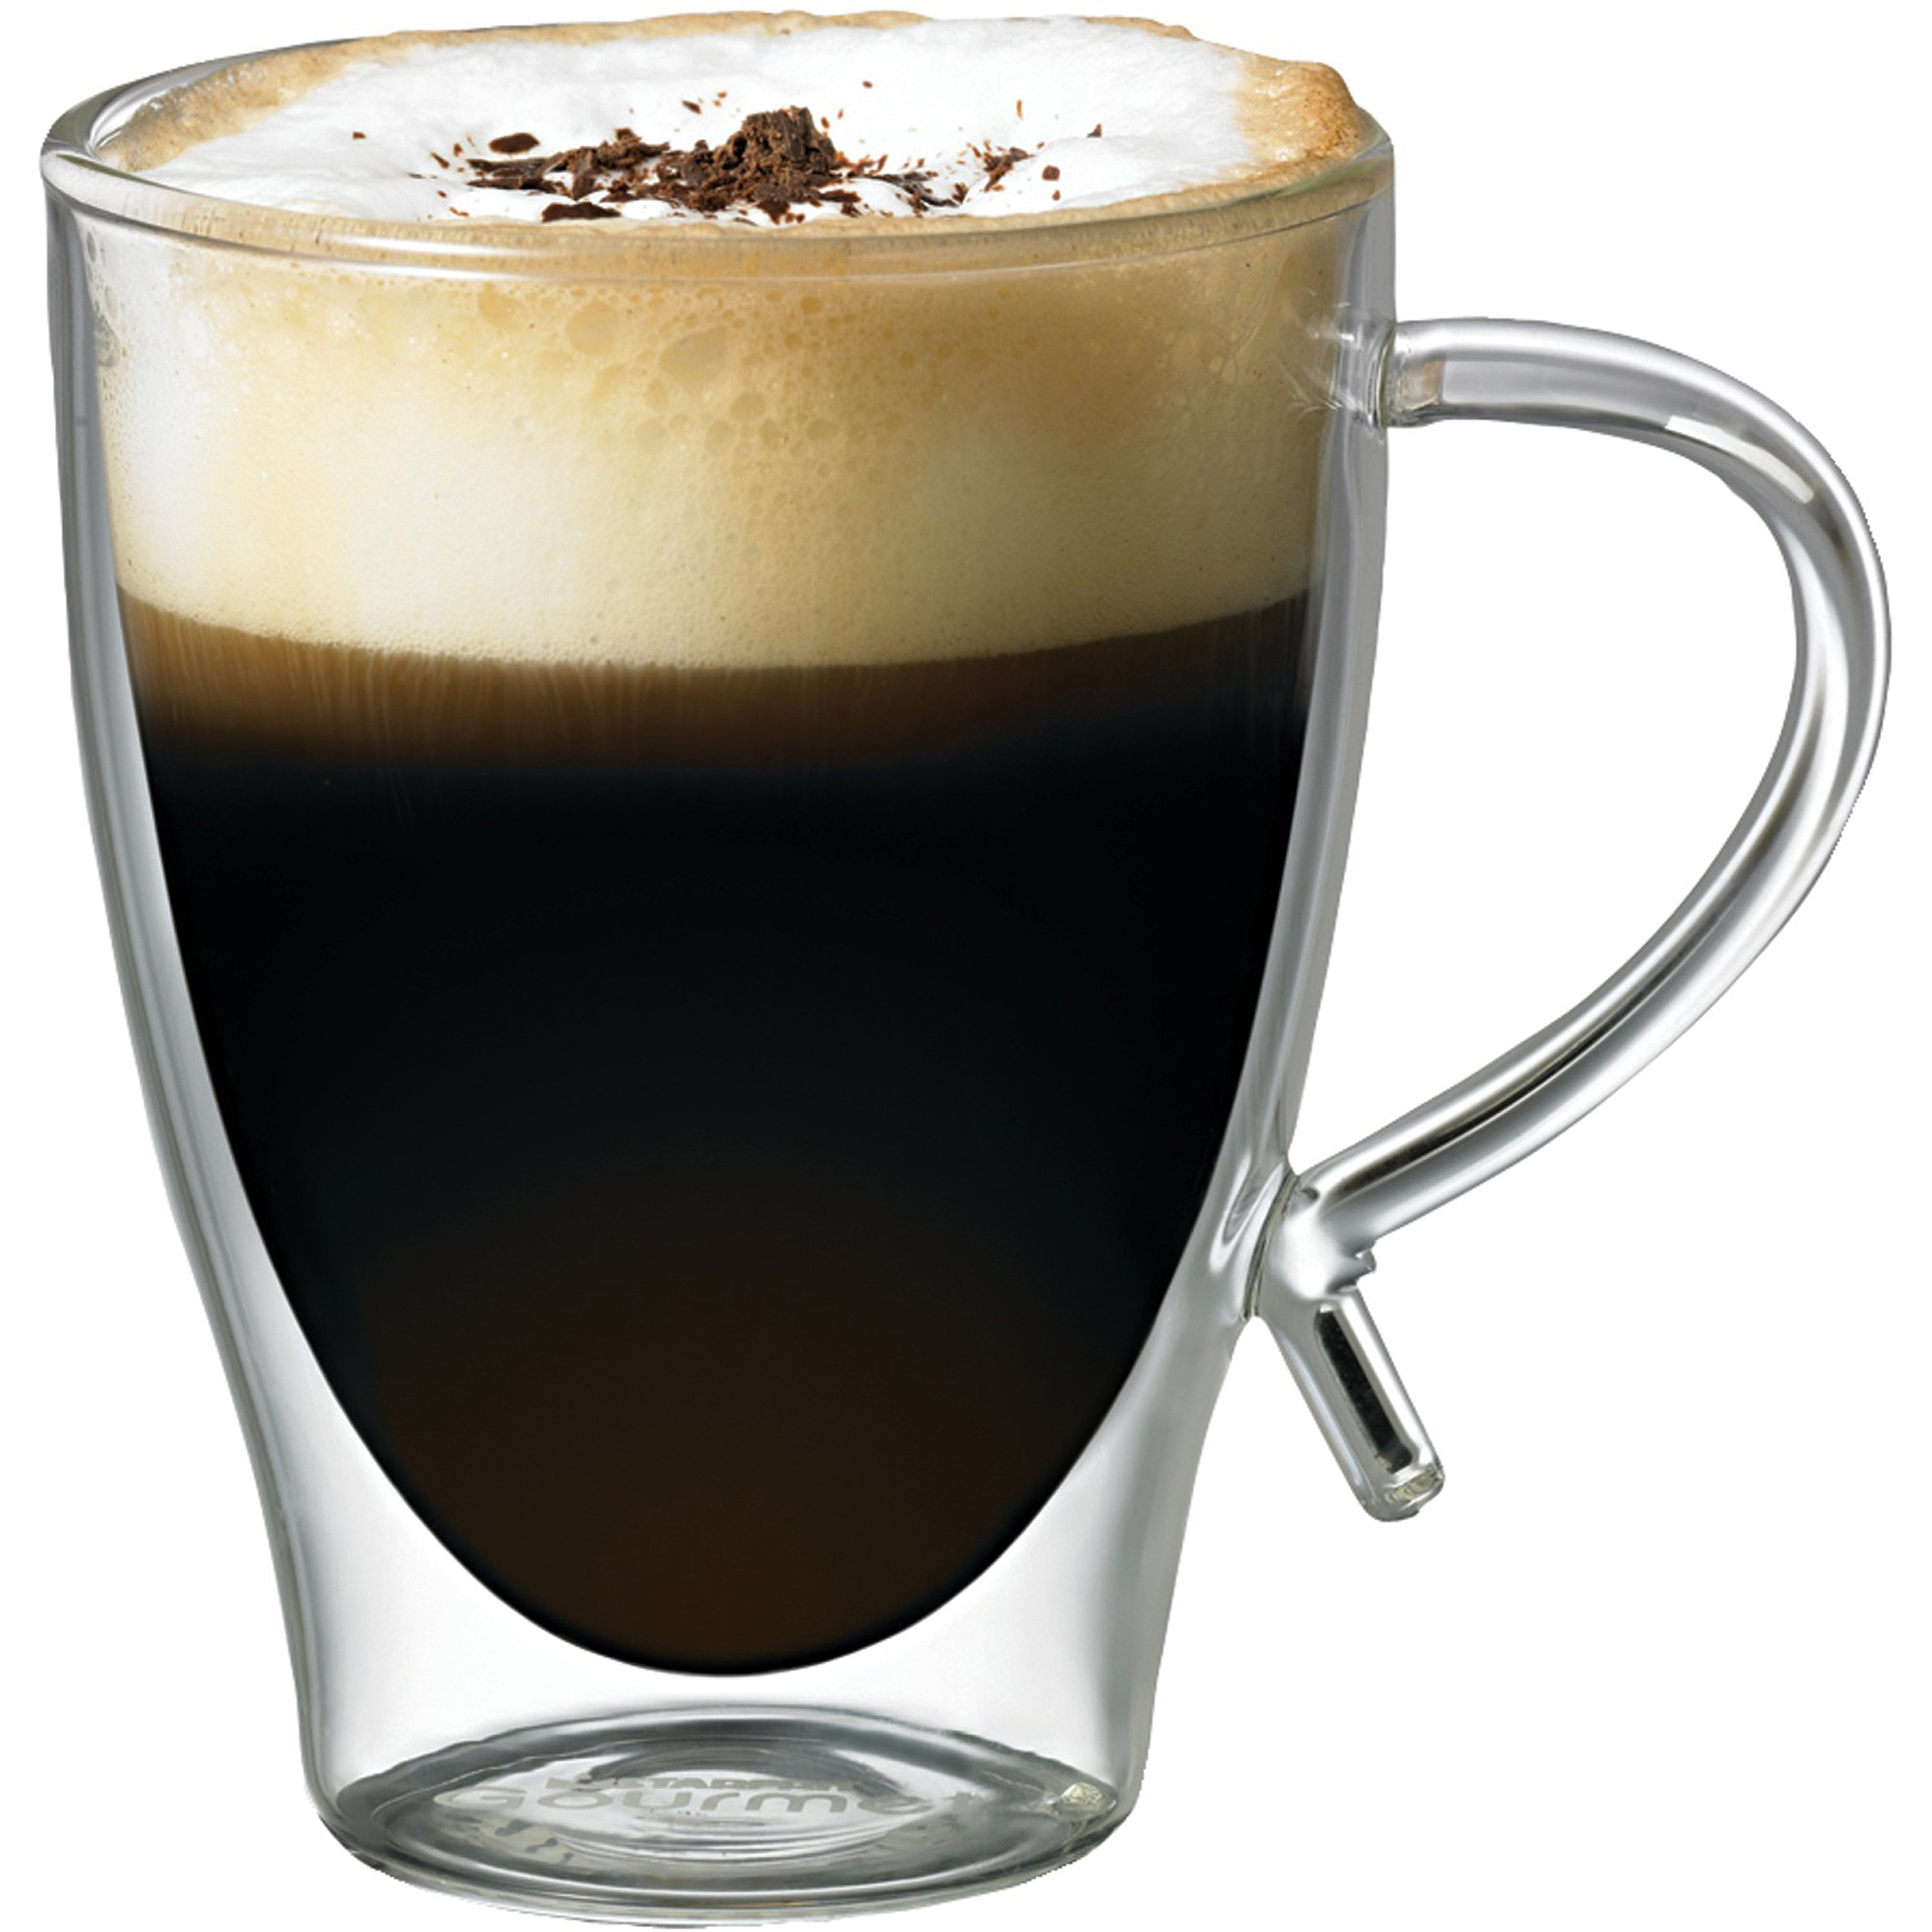 Starfrit 12 oz Double-Wall Glass Coffee Cup